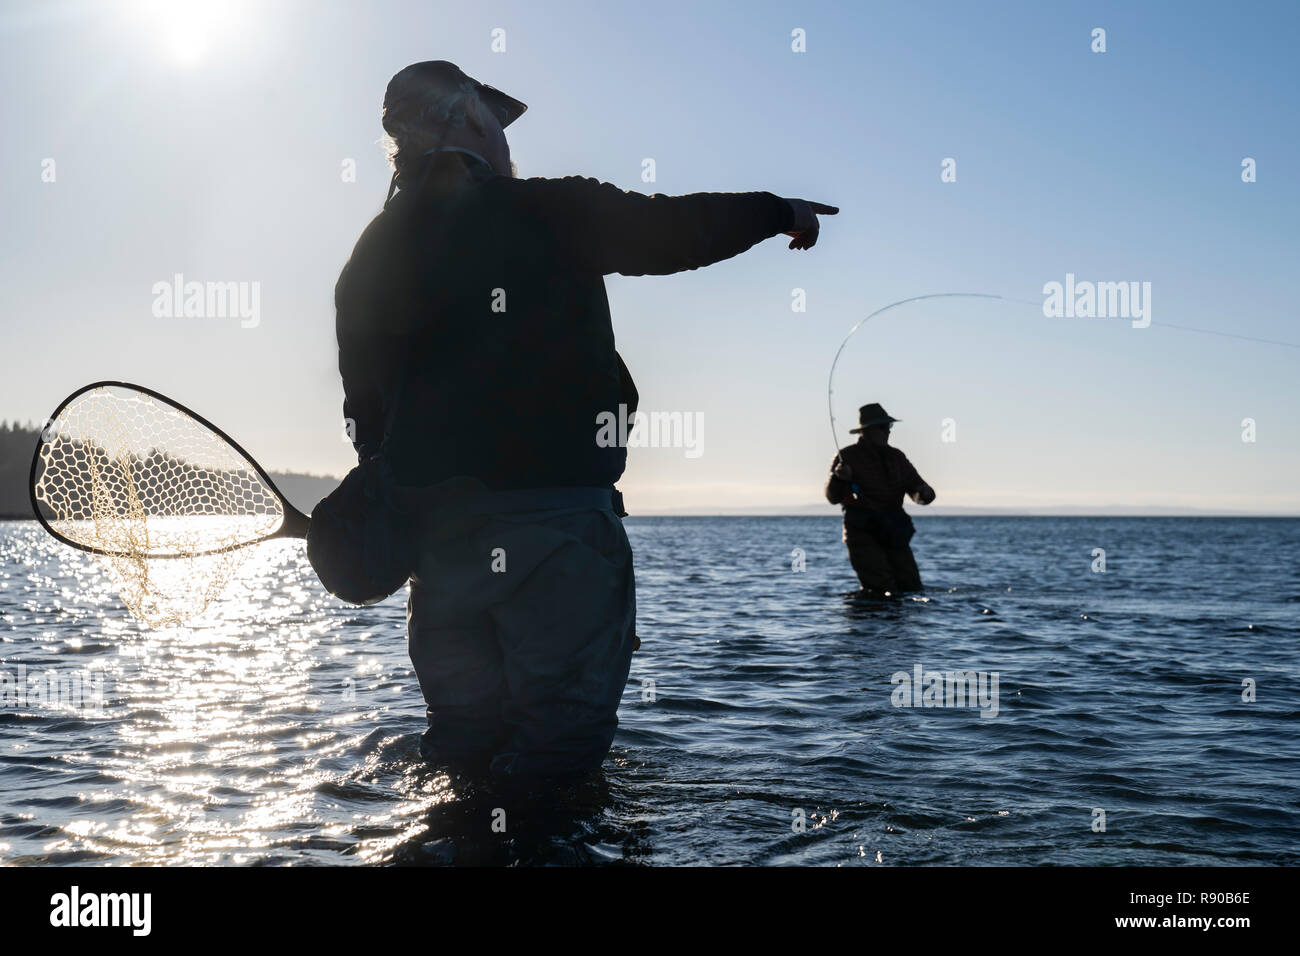 A guide advises his client while fly fishing in salt water